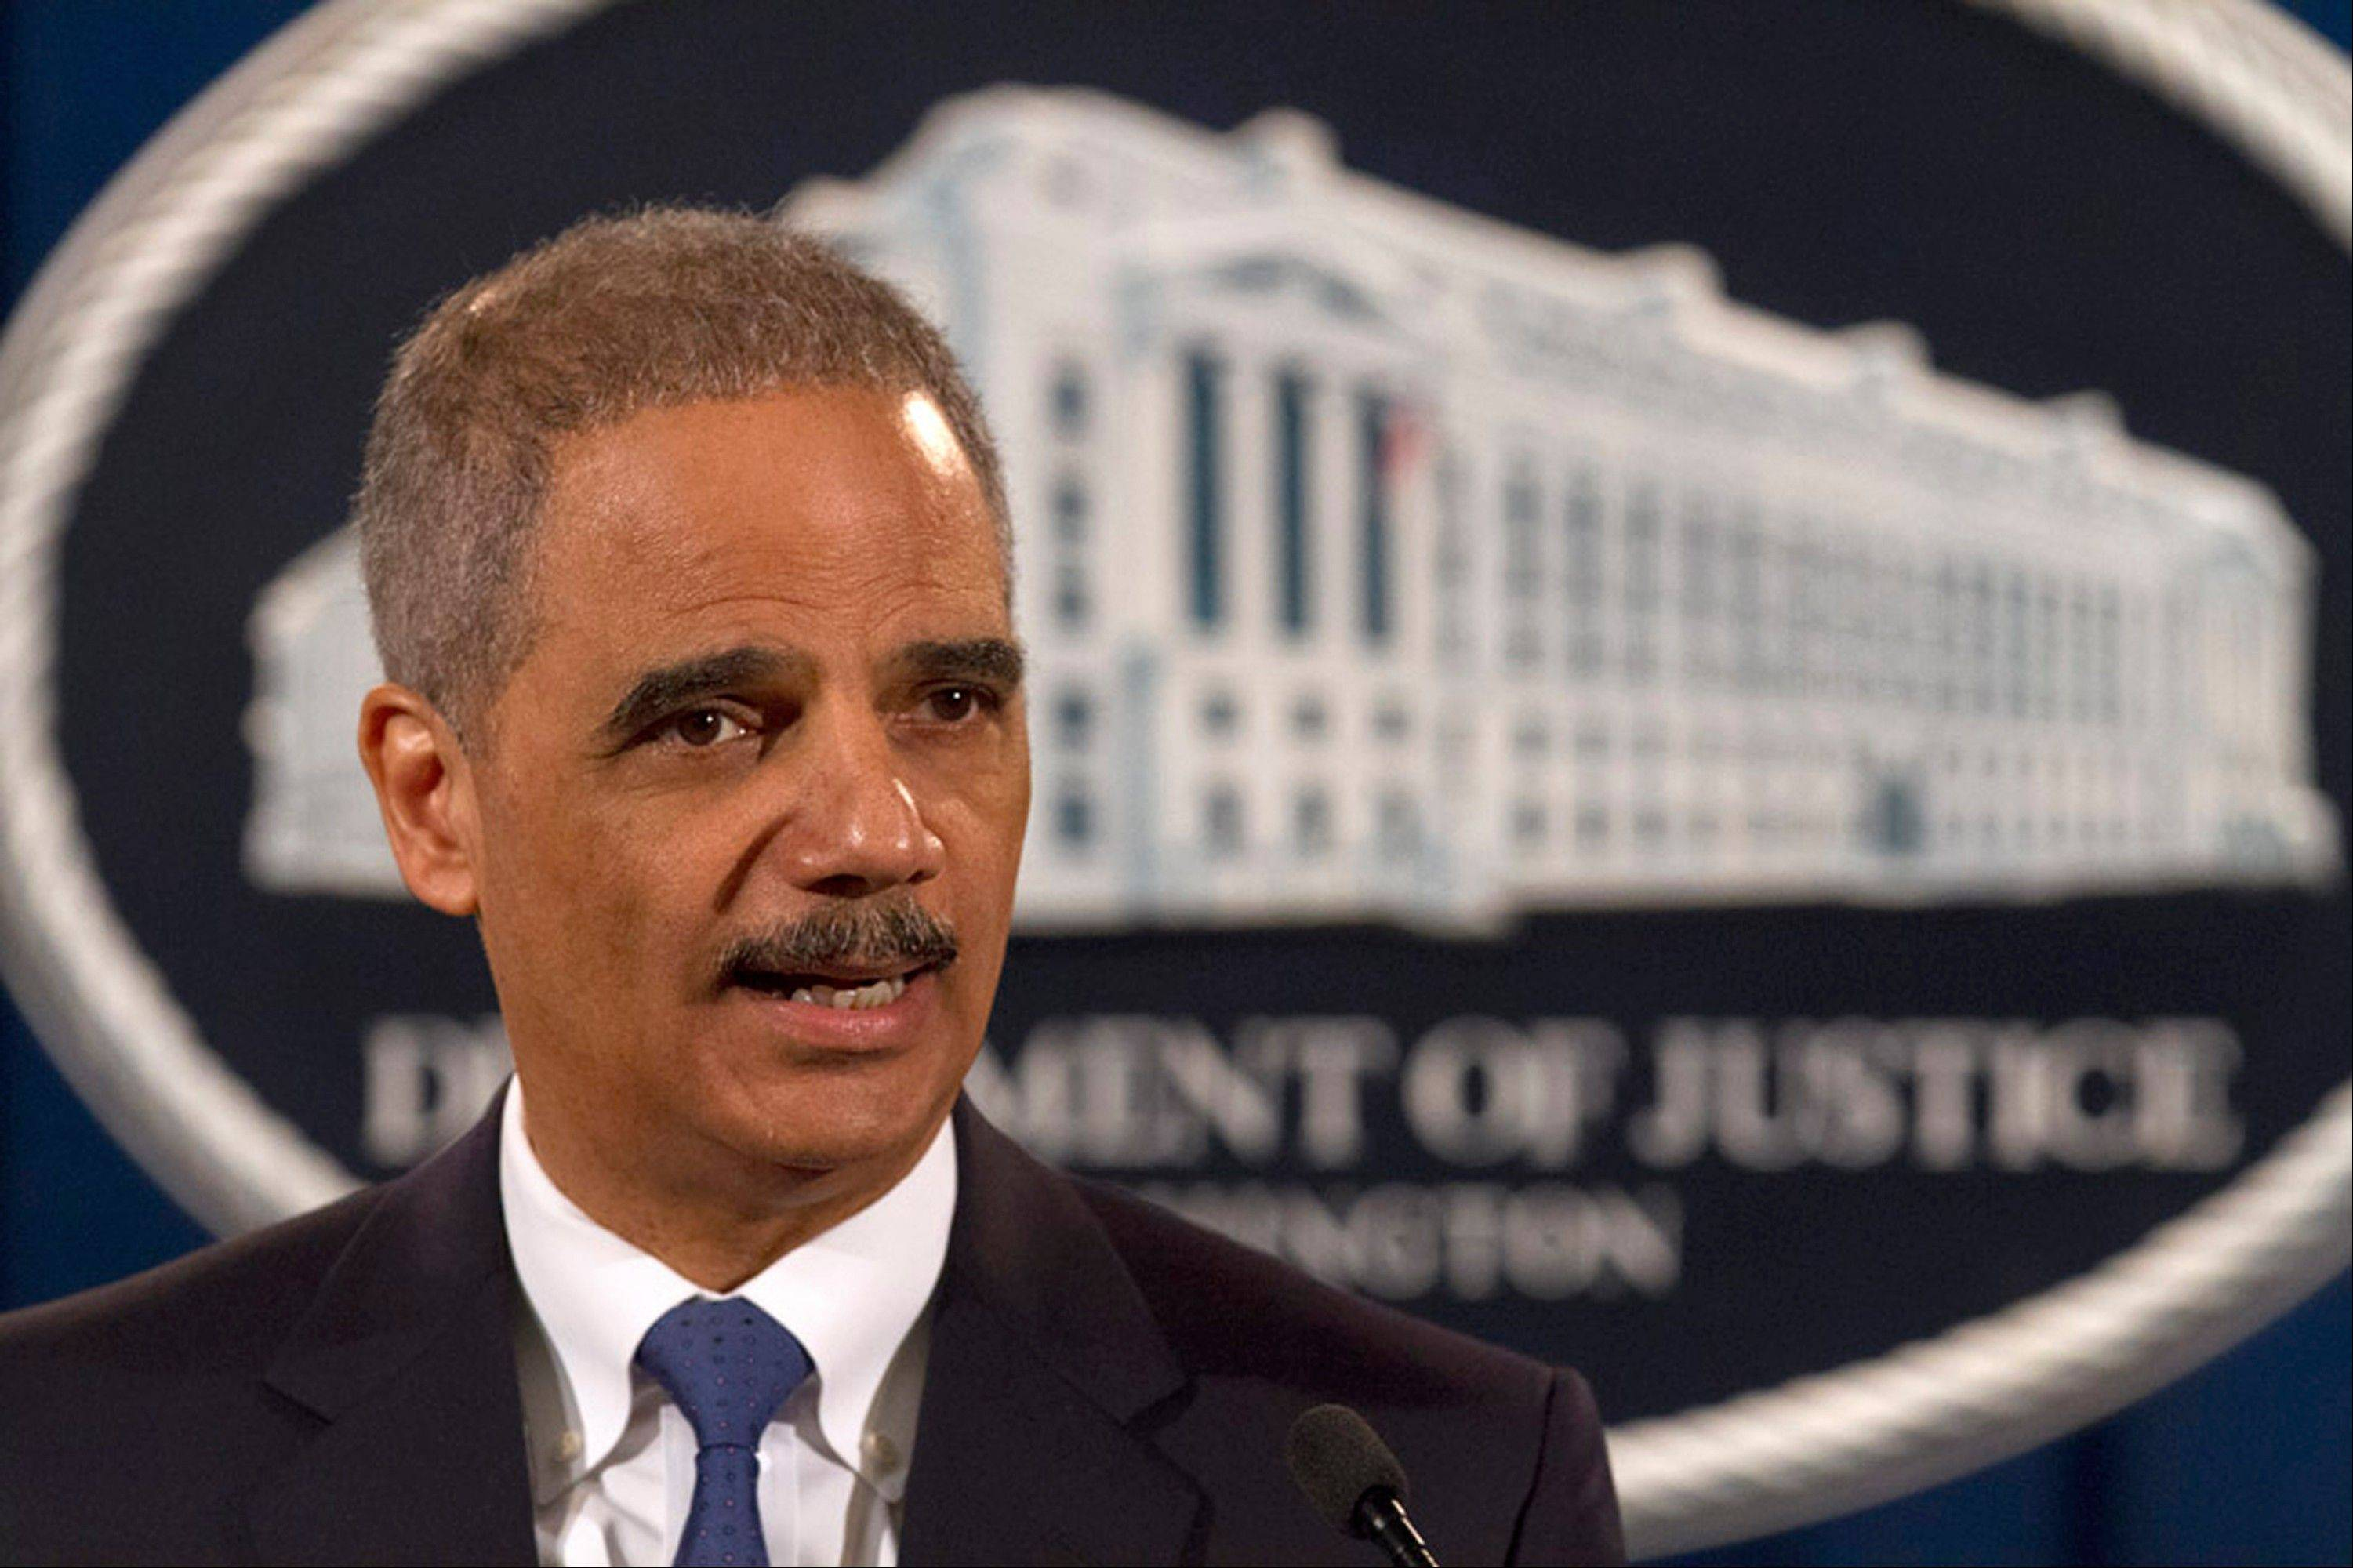 Attorney General Eric Holder speaks at the Justice Department in Washington Tuesday. The U.S. government accused Standard & Poor�s of inflating ratings on mortgage investments to boost its bottom line, taking aim at a key player in the run-up to the financial crisis.